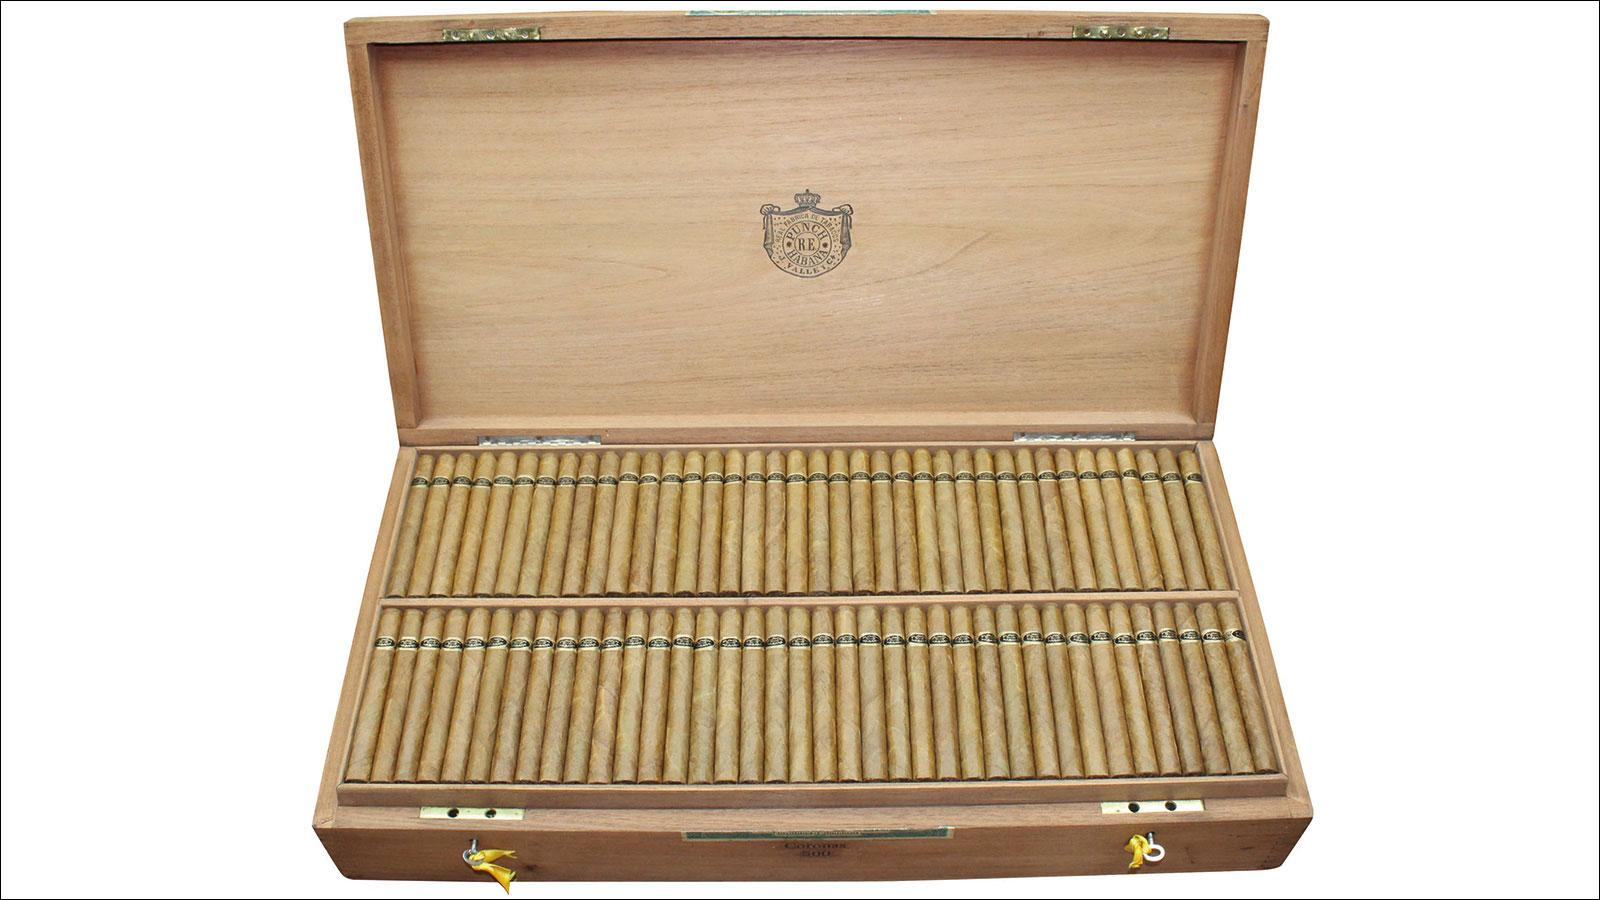 Vintage Cubans Up For Online Auction